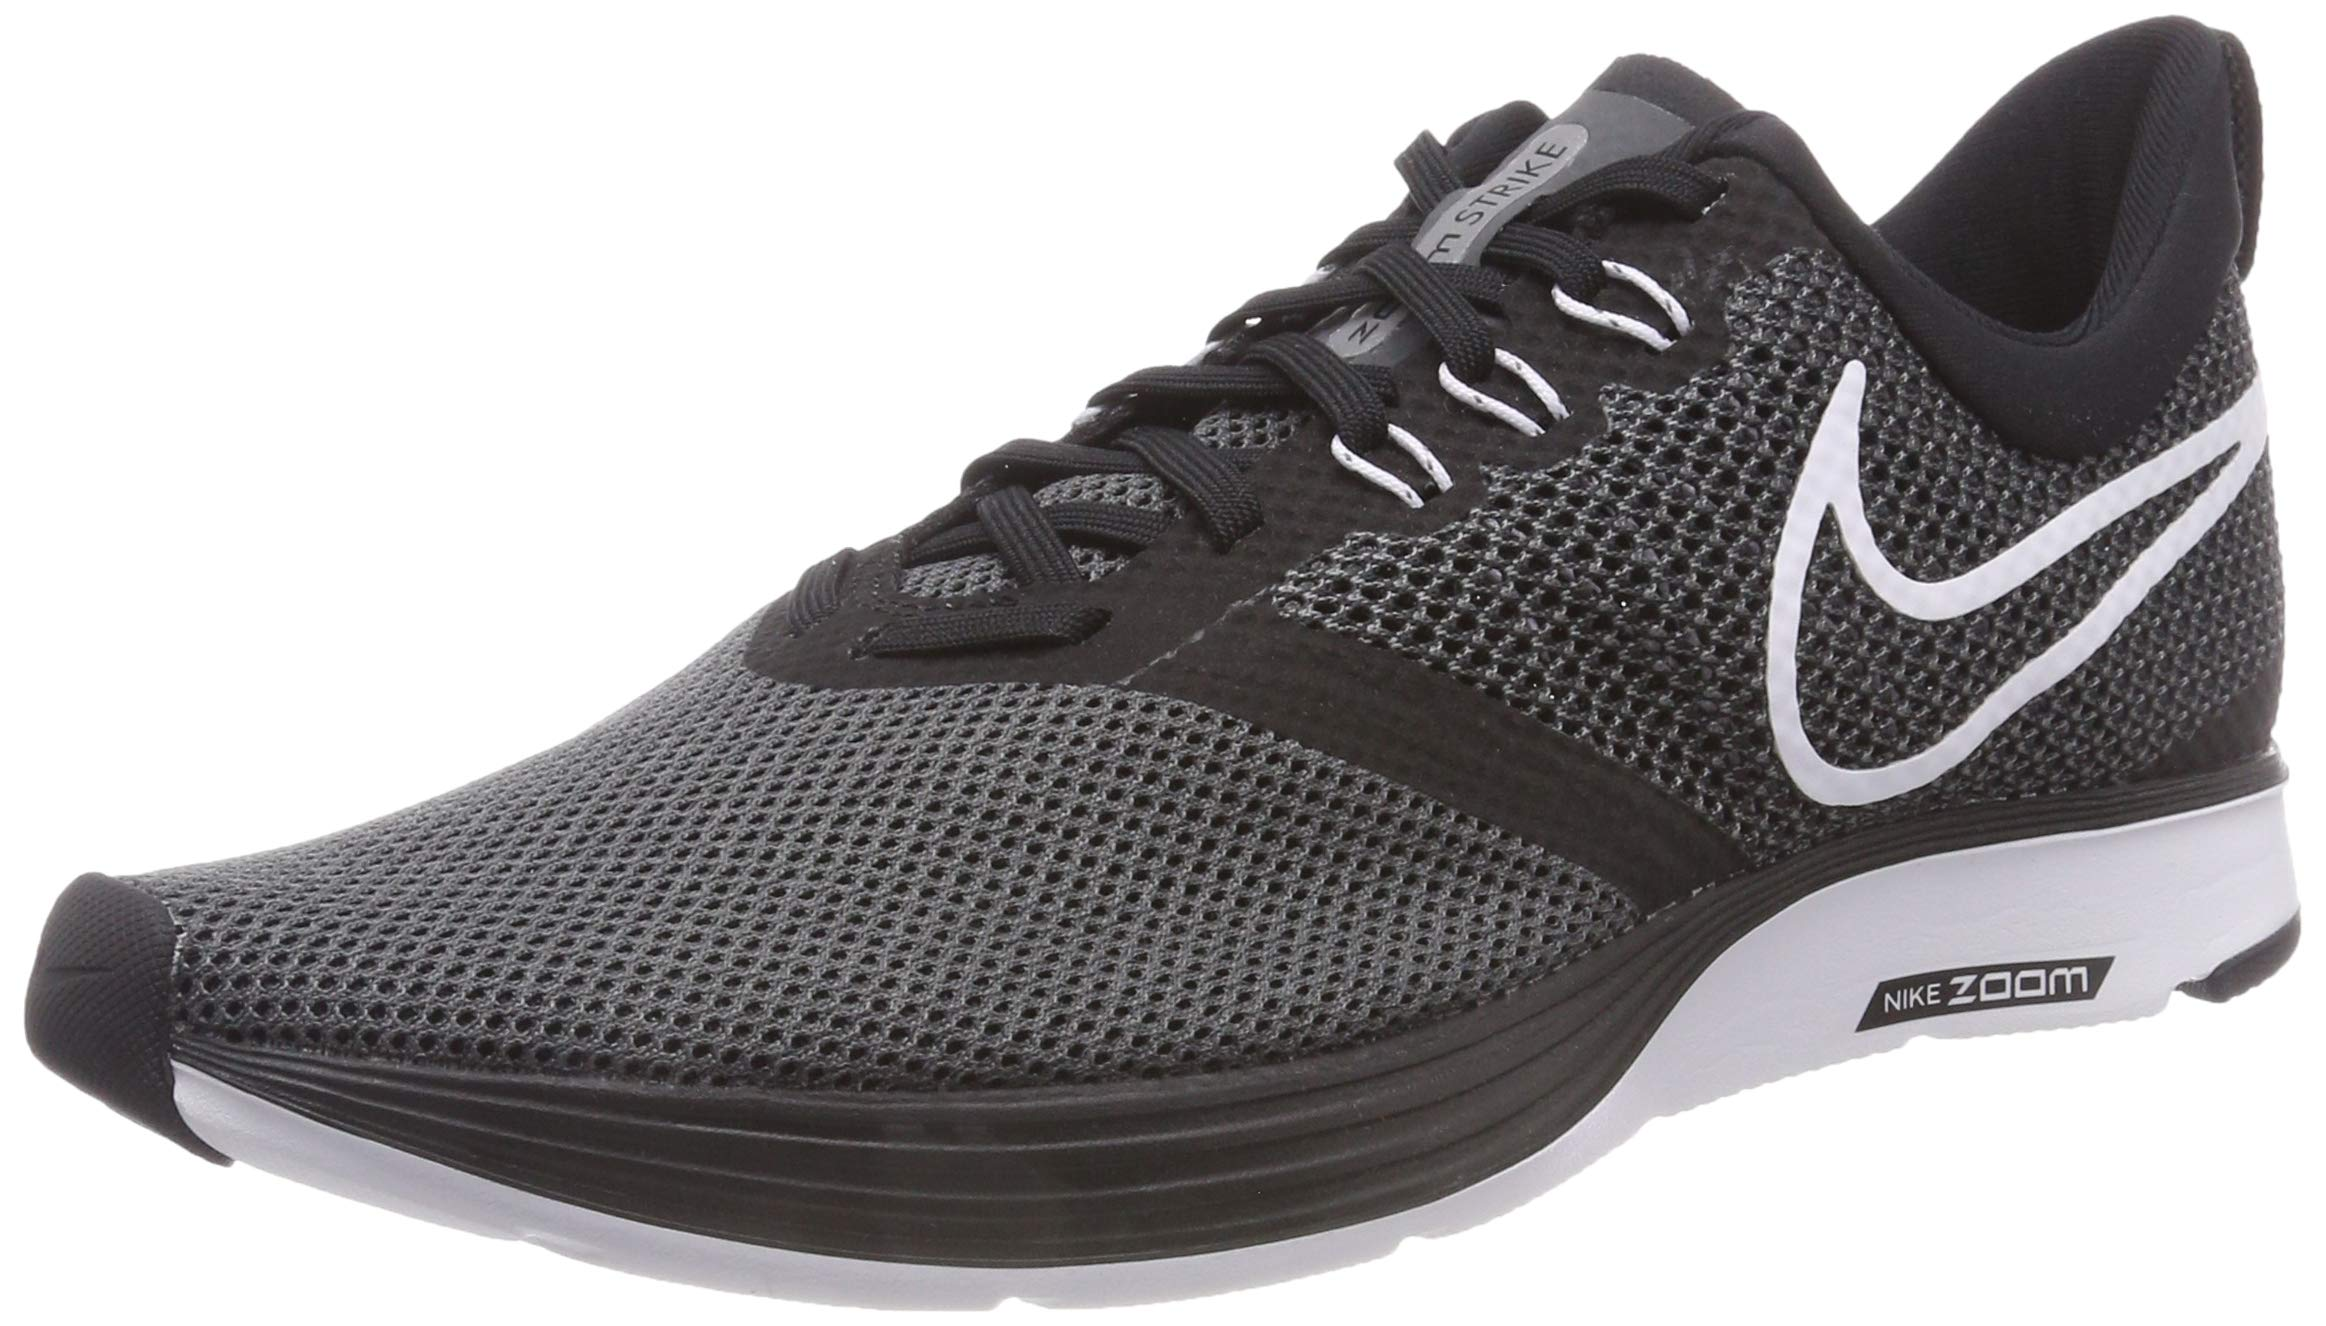 Nike Women's Zoom Strike Black/White-Dark Grey Ankle-High Running Shoe - 5M